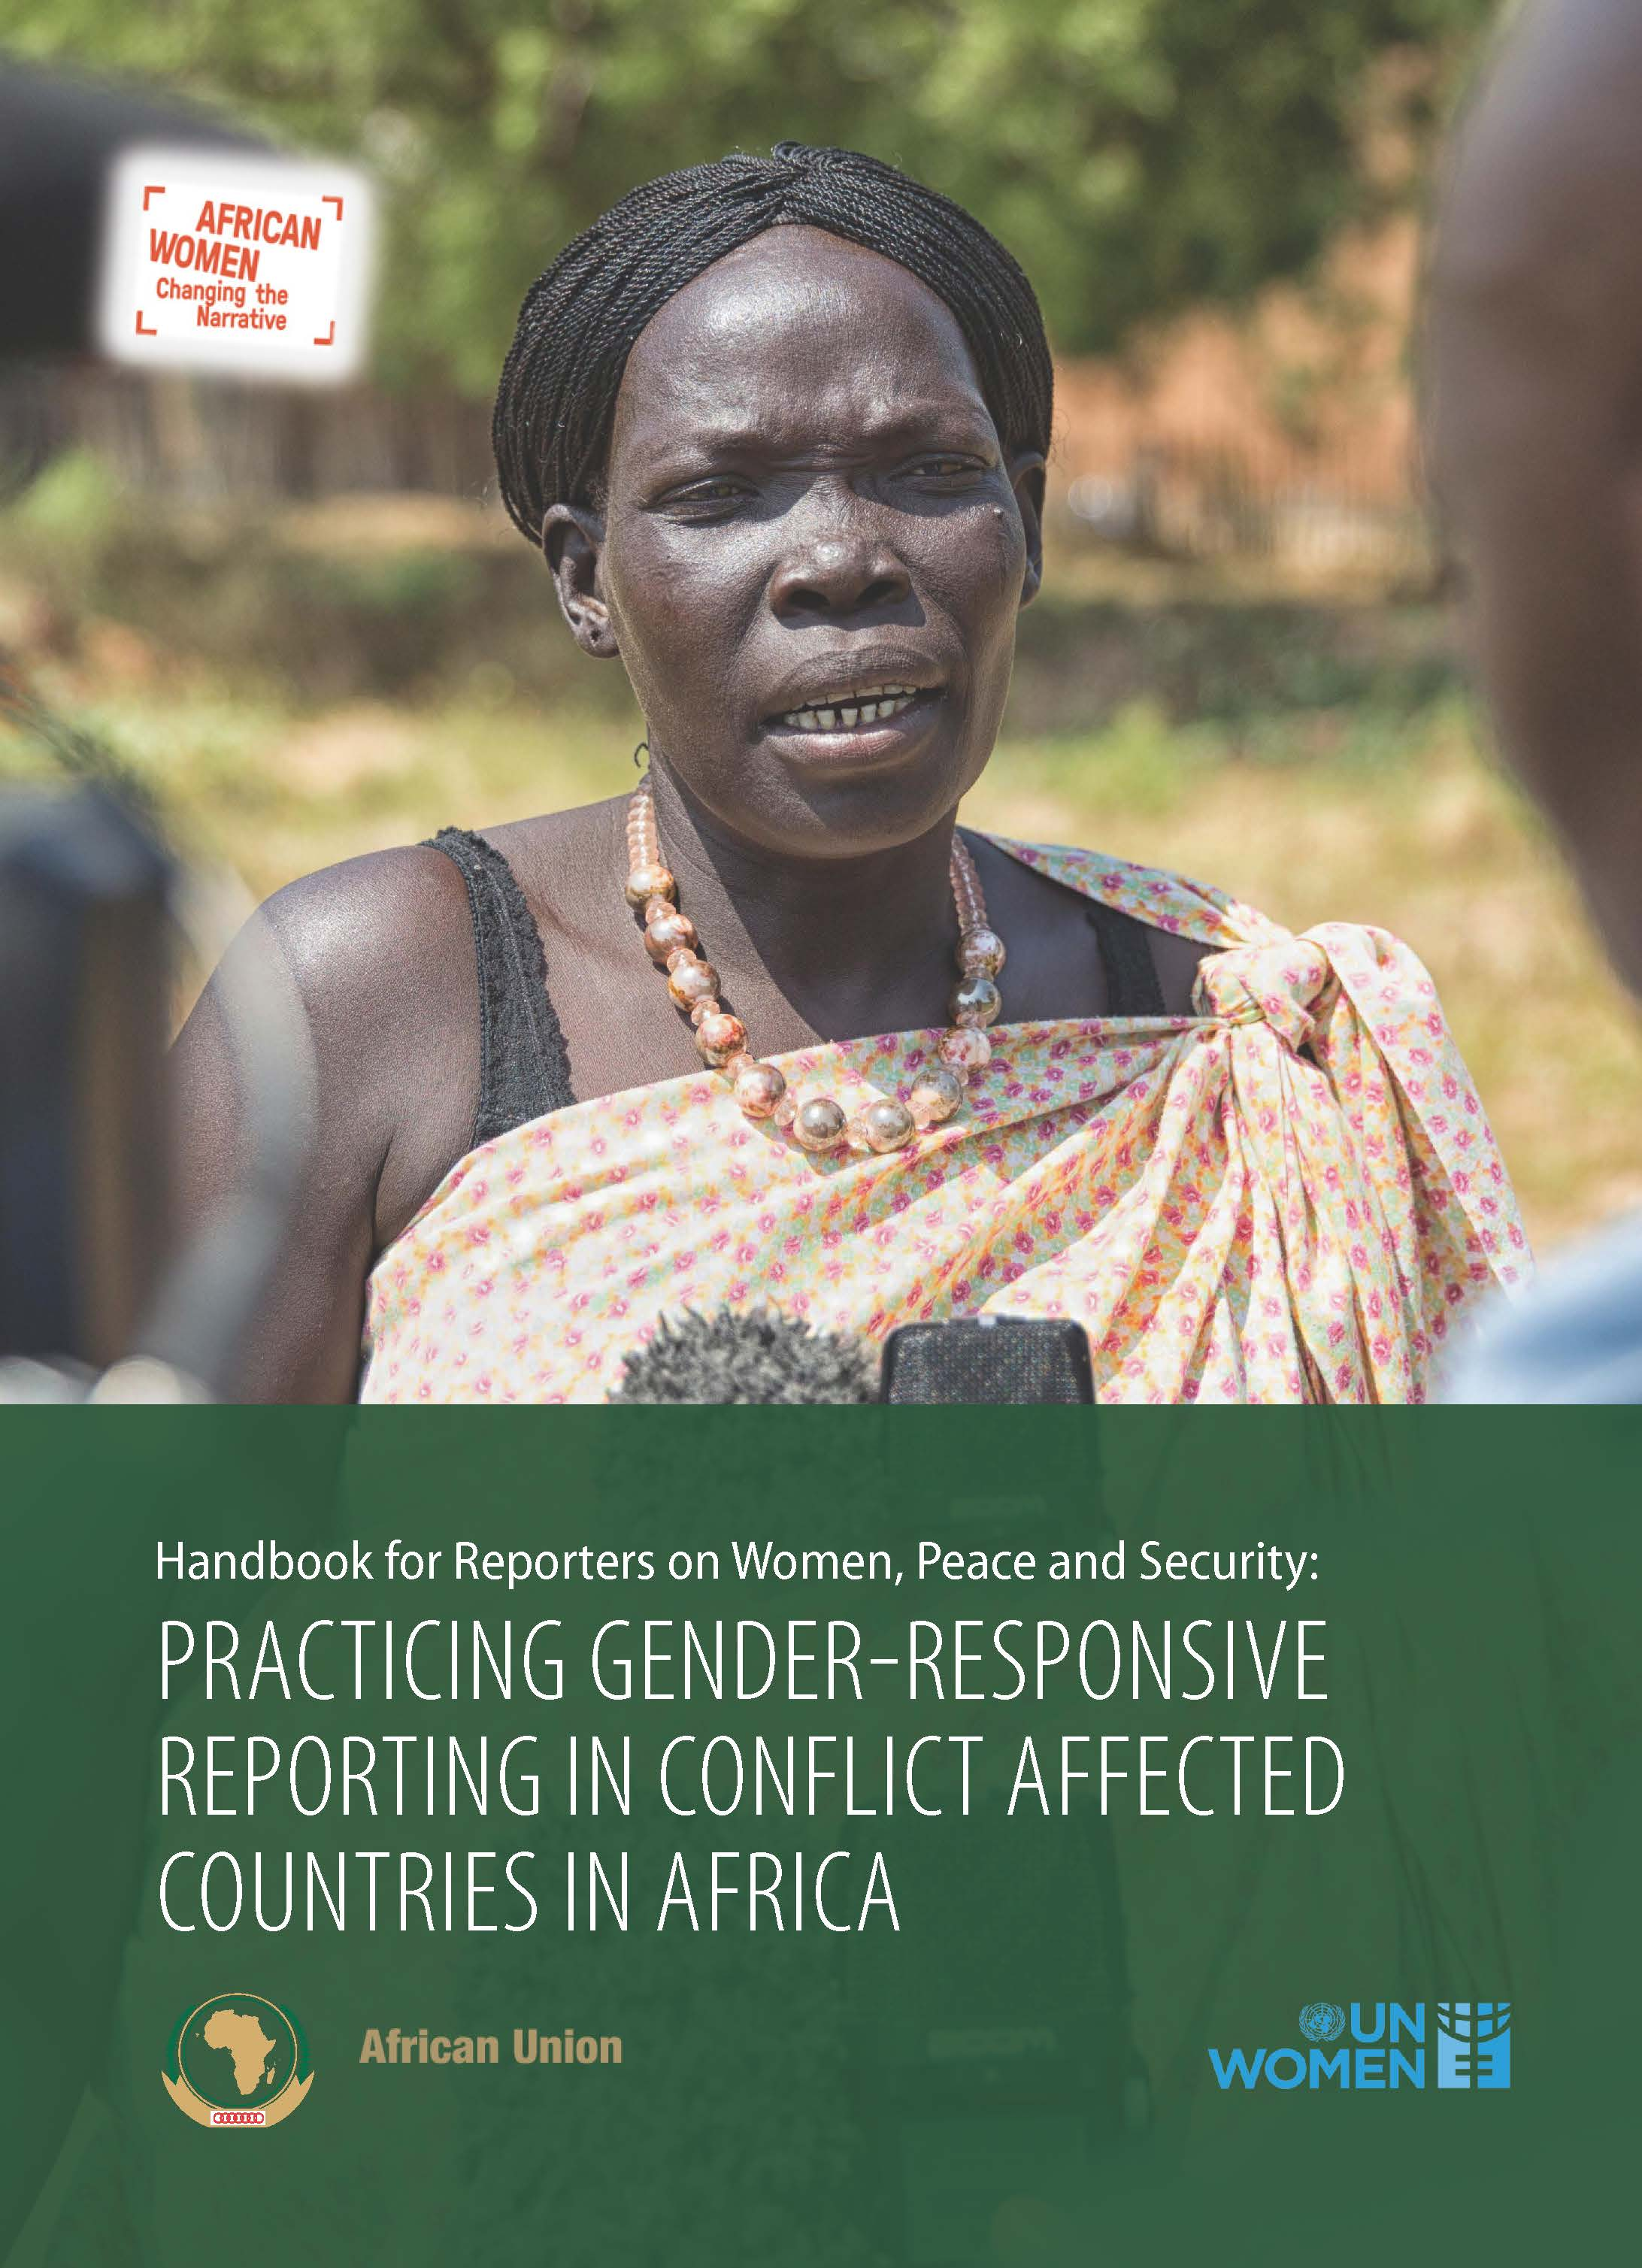 Handbooks Amplifying Women's Role in Peace and Security Processes in Africa Launched